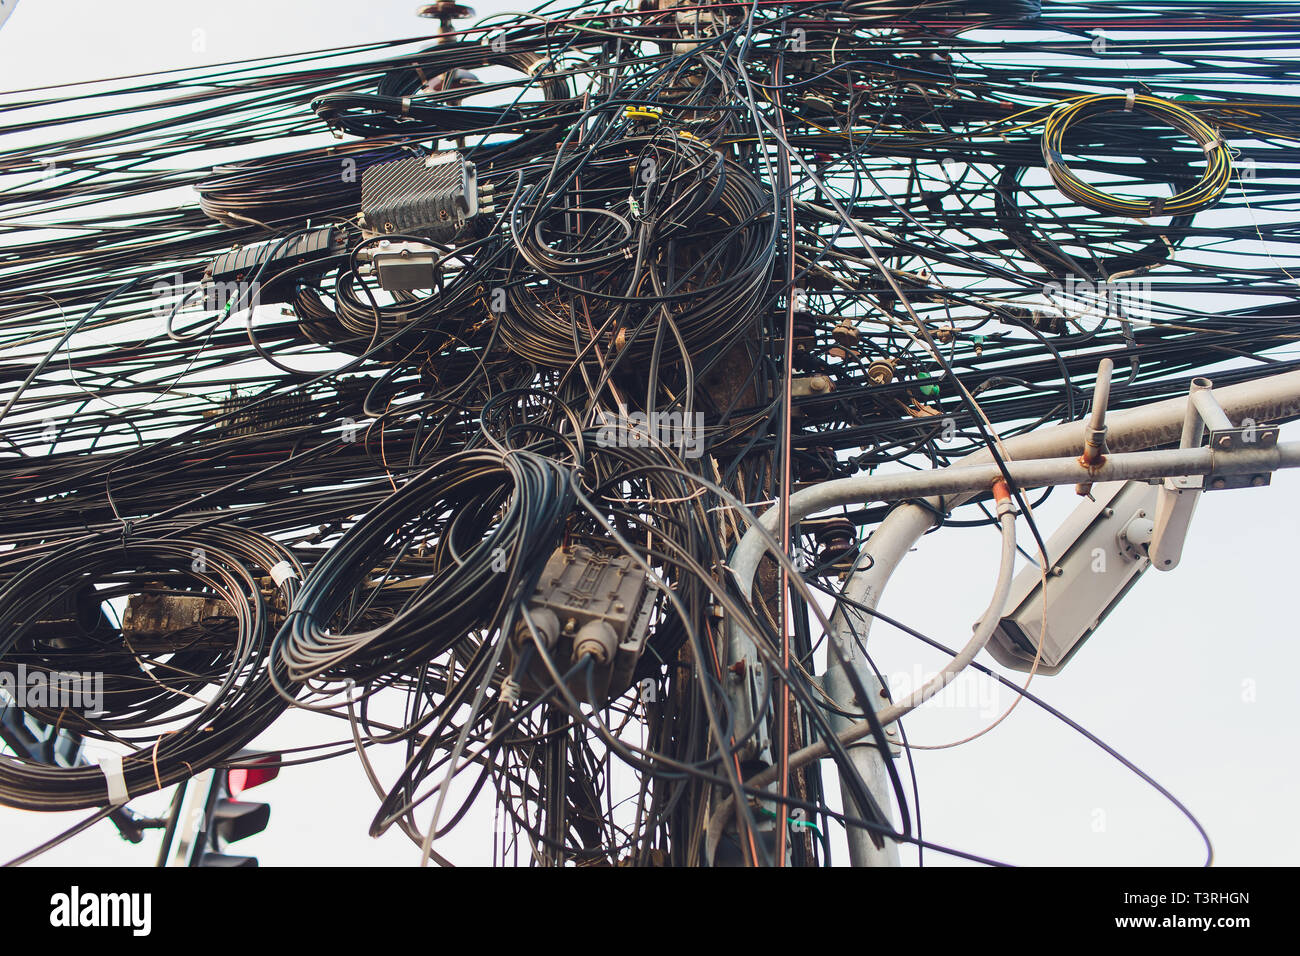 Messy Electrical Cables Wires On High Resolution Stock Photography And Images Alamy